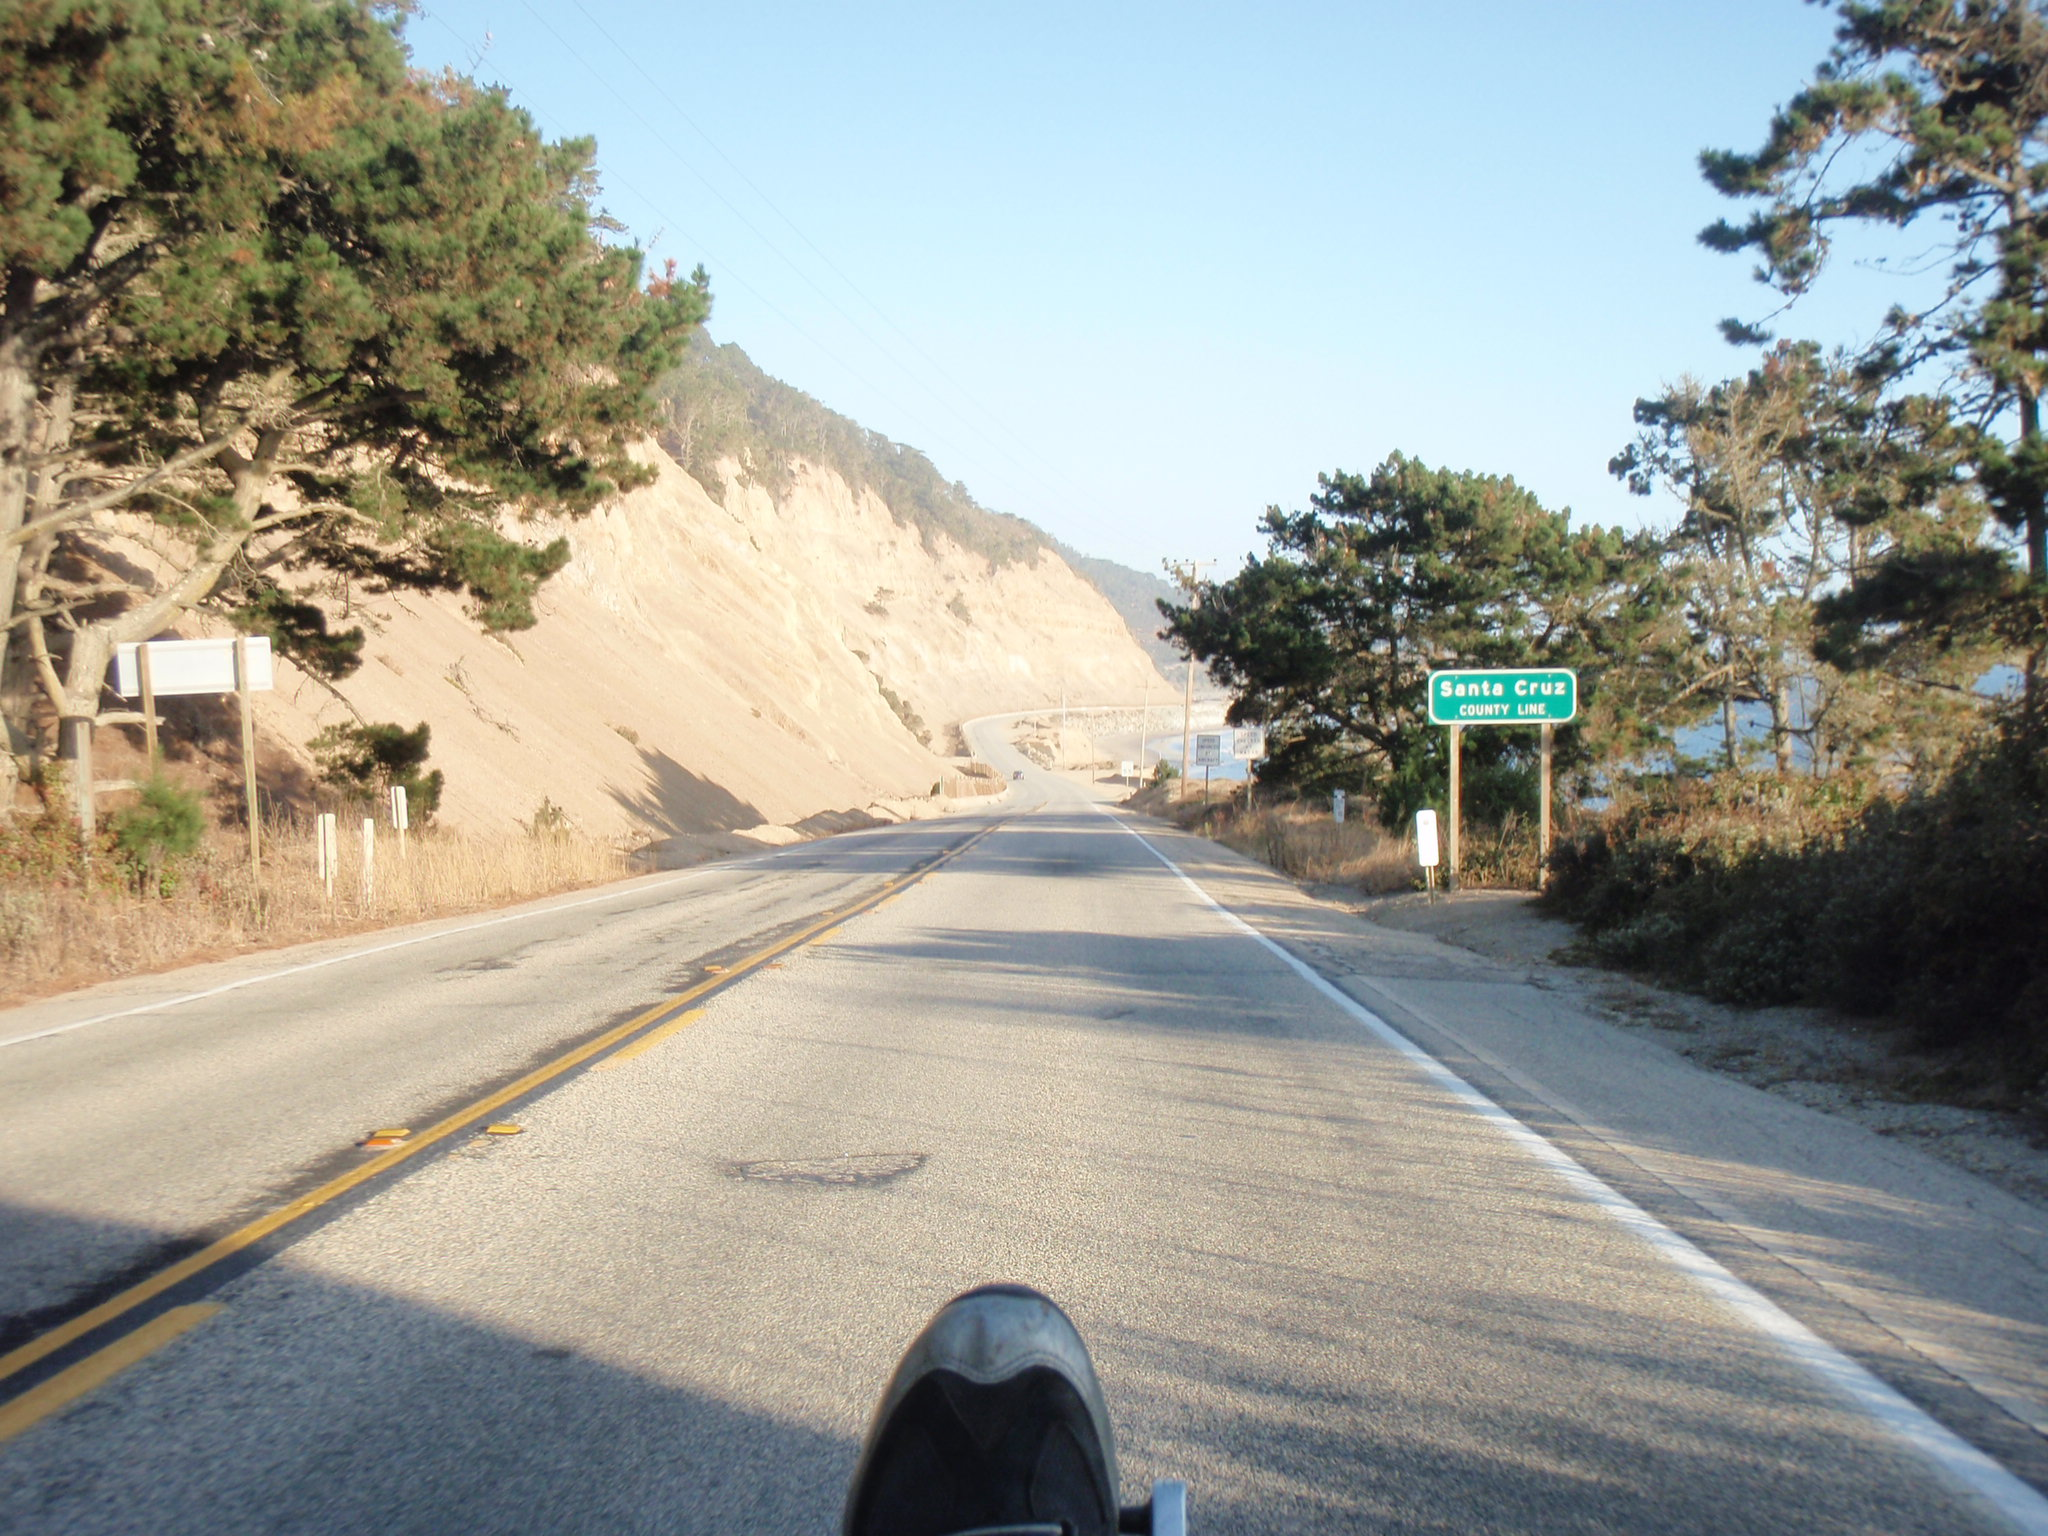 At the Santa Cruz county line